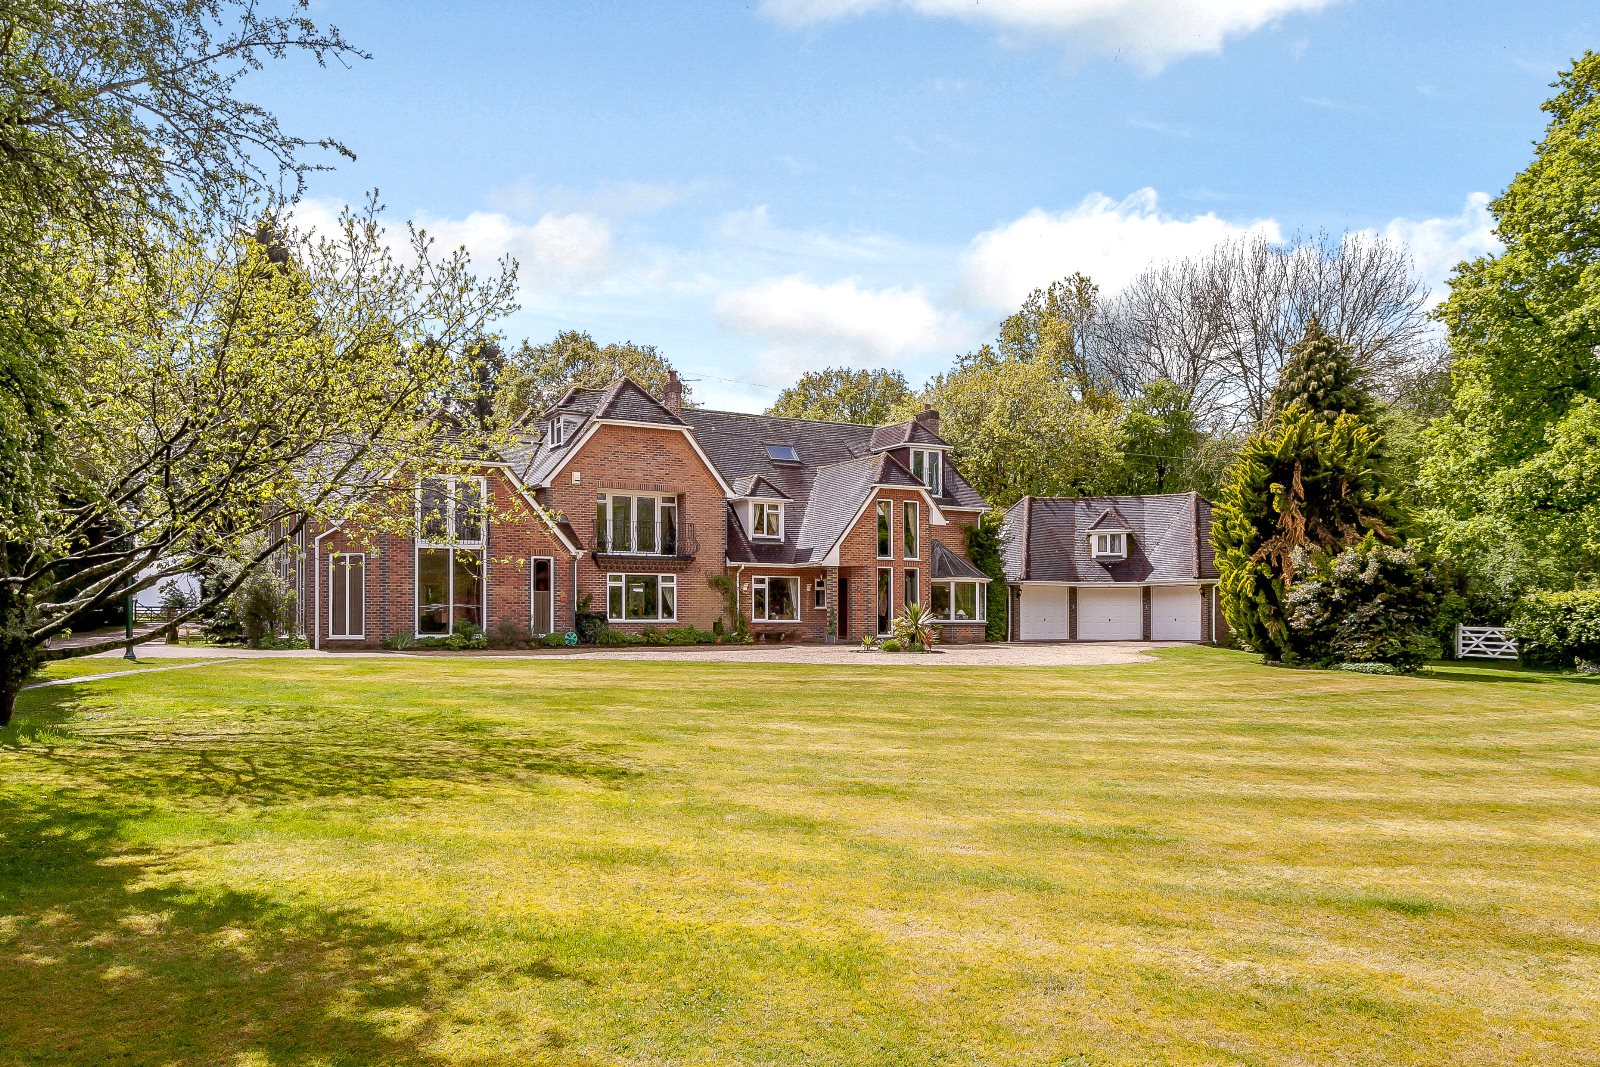 Hampshire - Real Estate and Apartments for Sale | Christie's